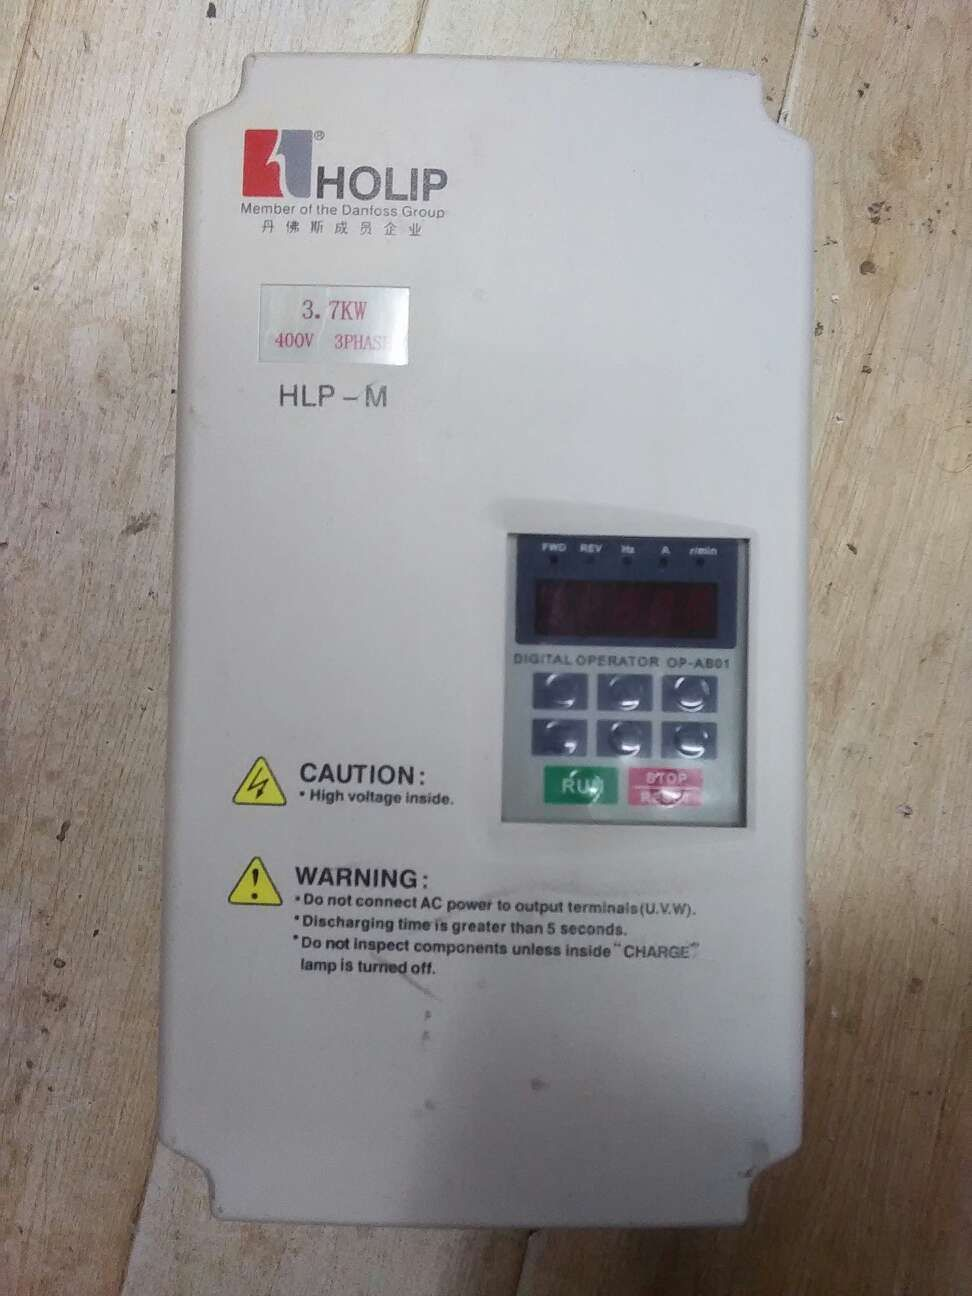 small resolution of vfd holip hlp m03d743b grinder inverter 3 7kw 4kw three phase motor speed controller 380v igbt